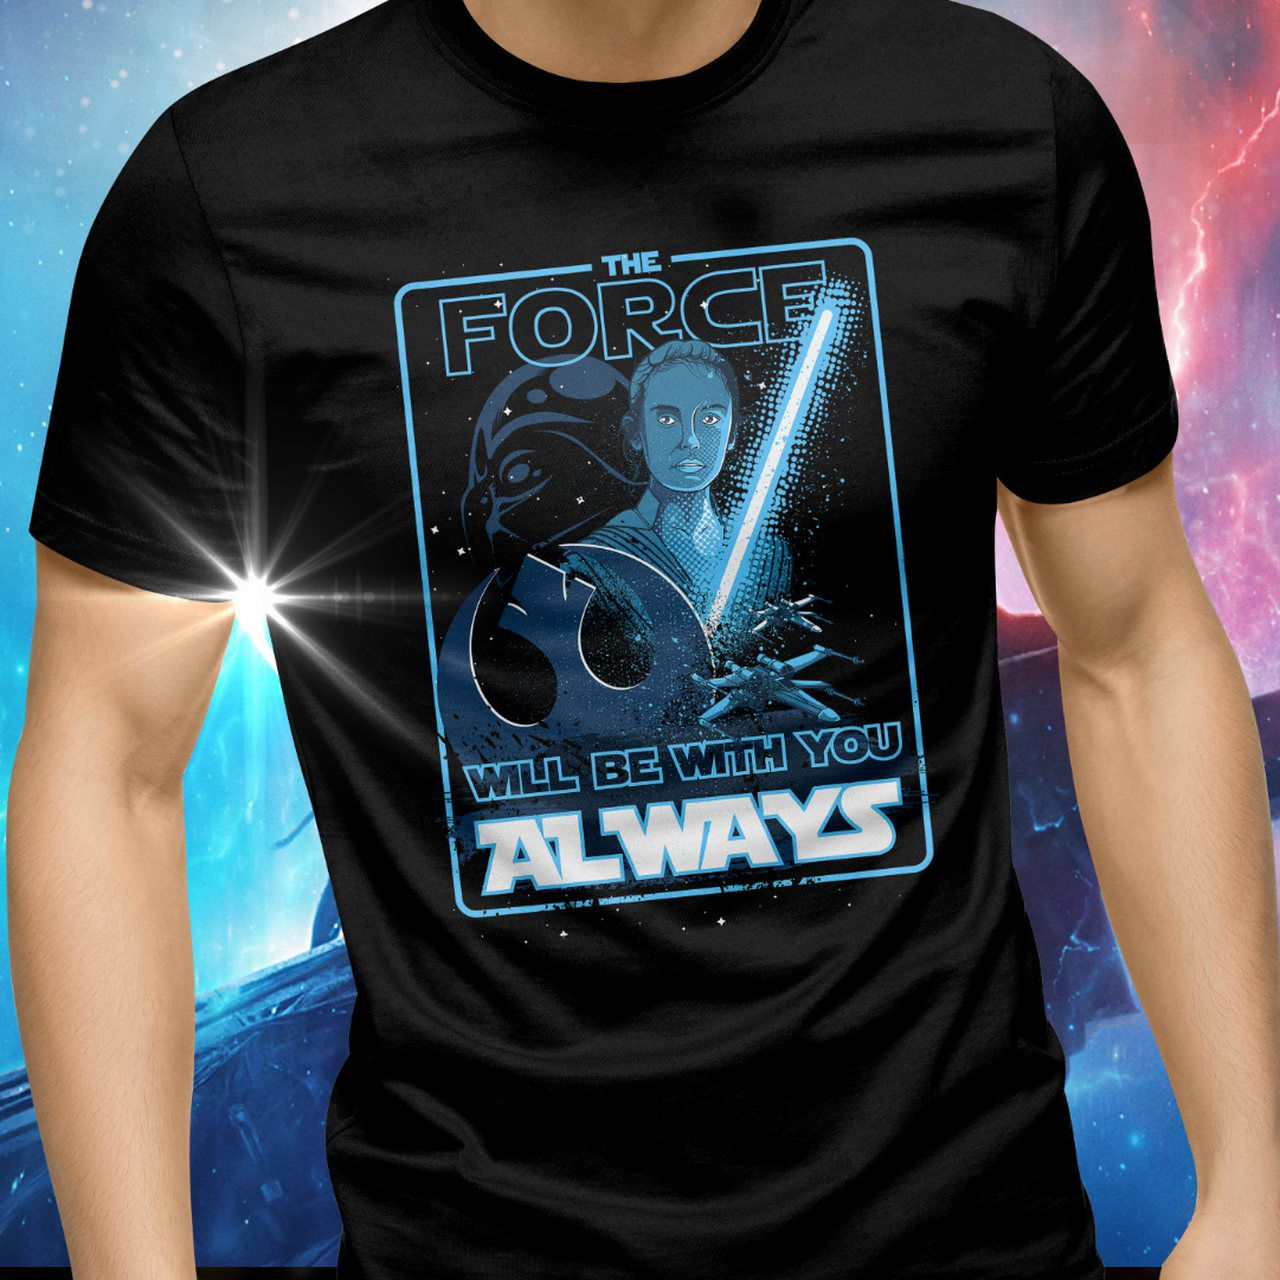 Camiseta Unissex The Force Will Be With You Always: Star Wars - Exclusiva Toyshow